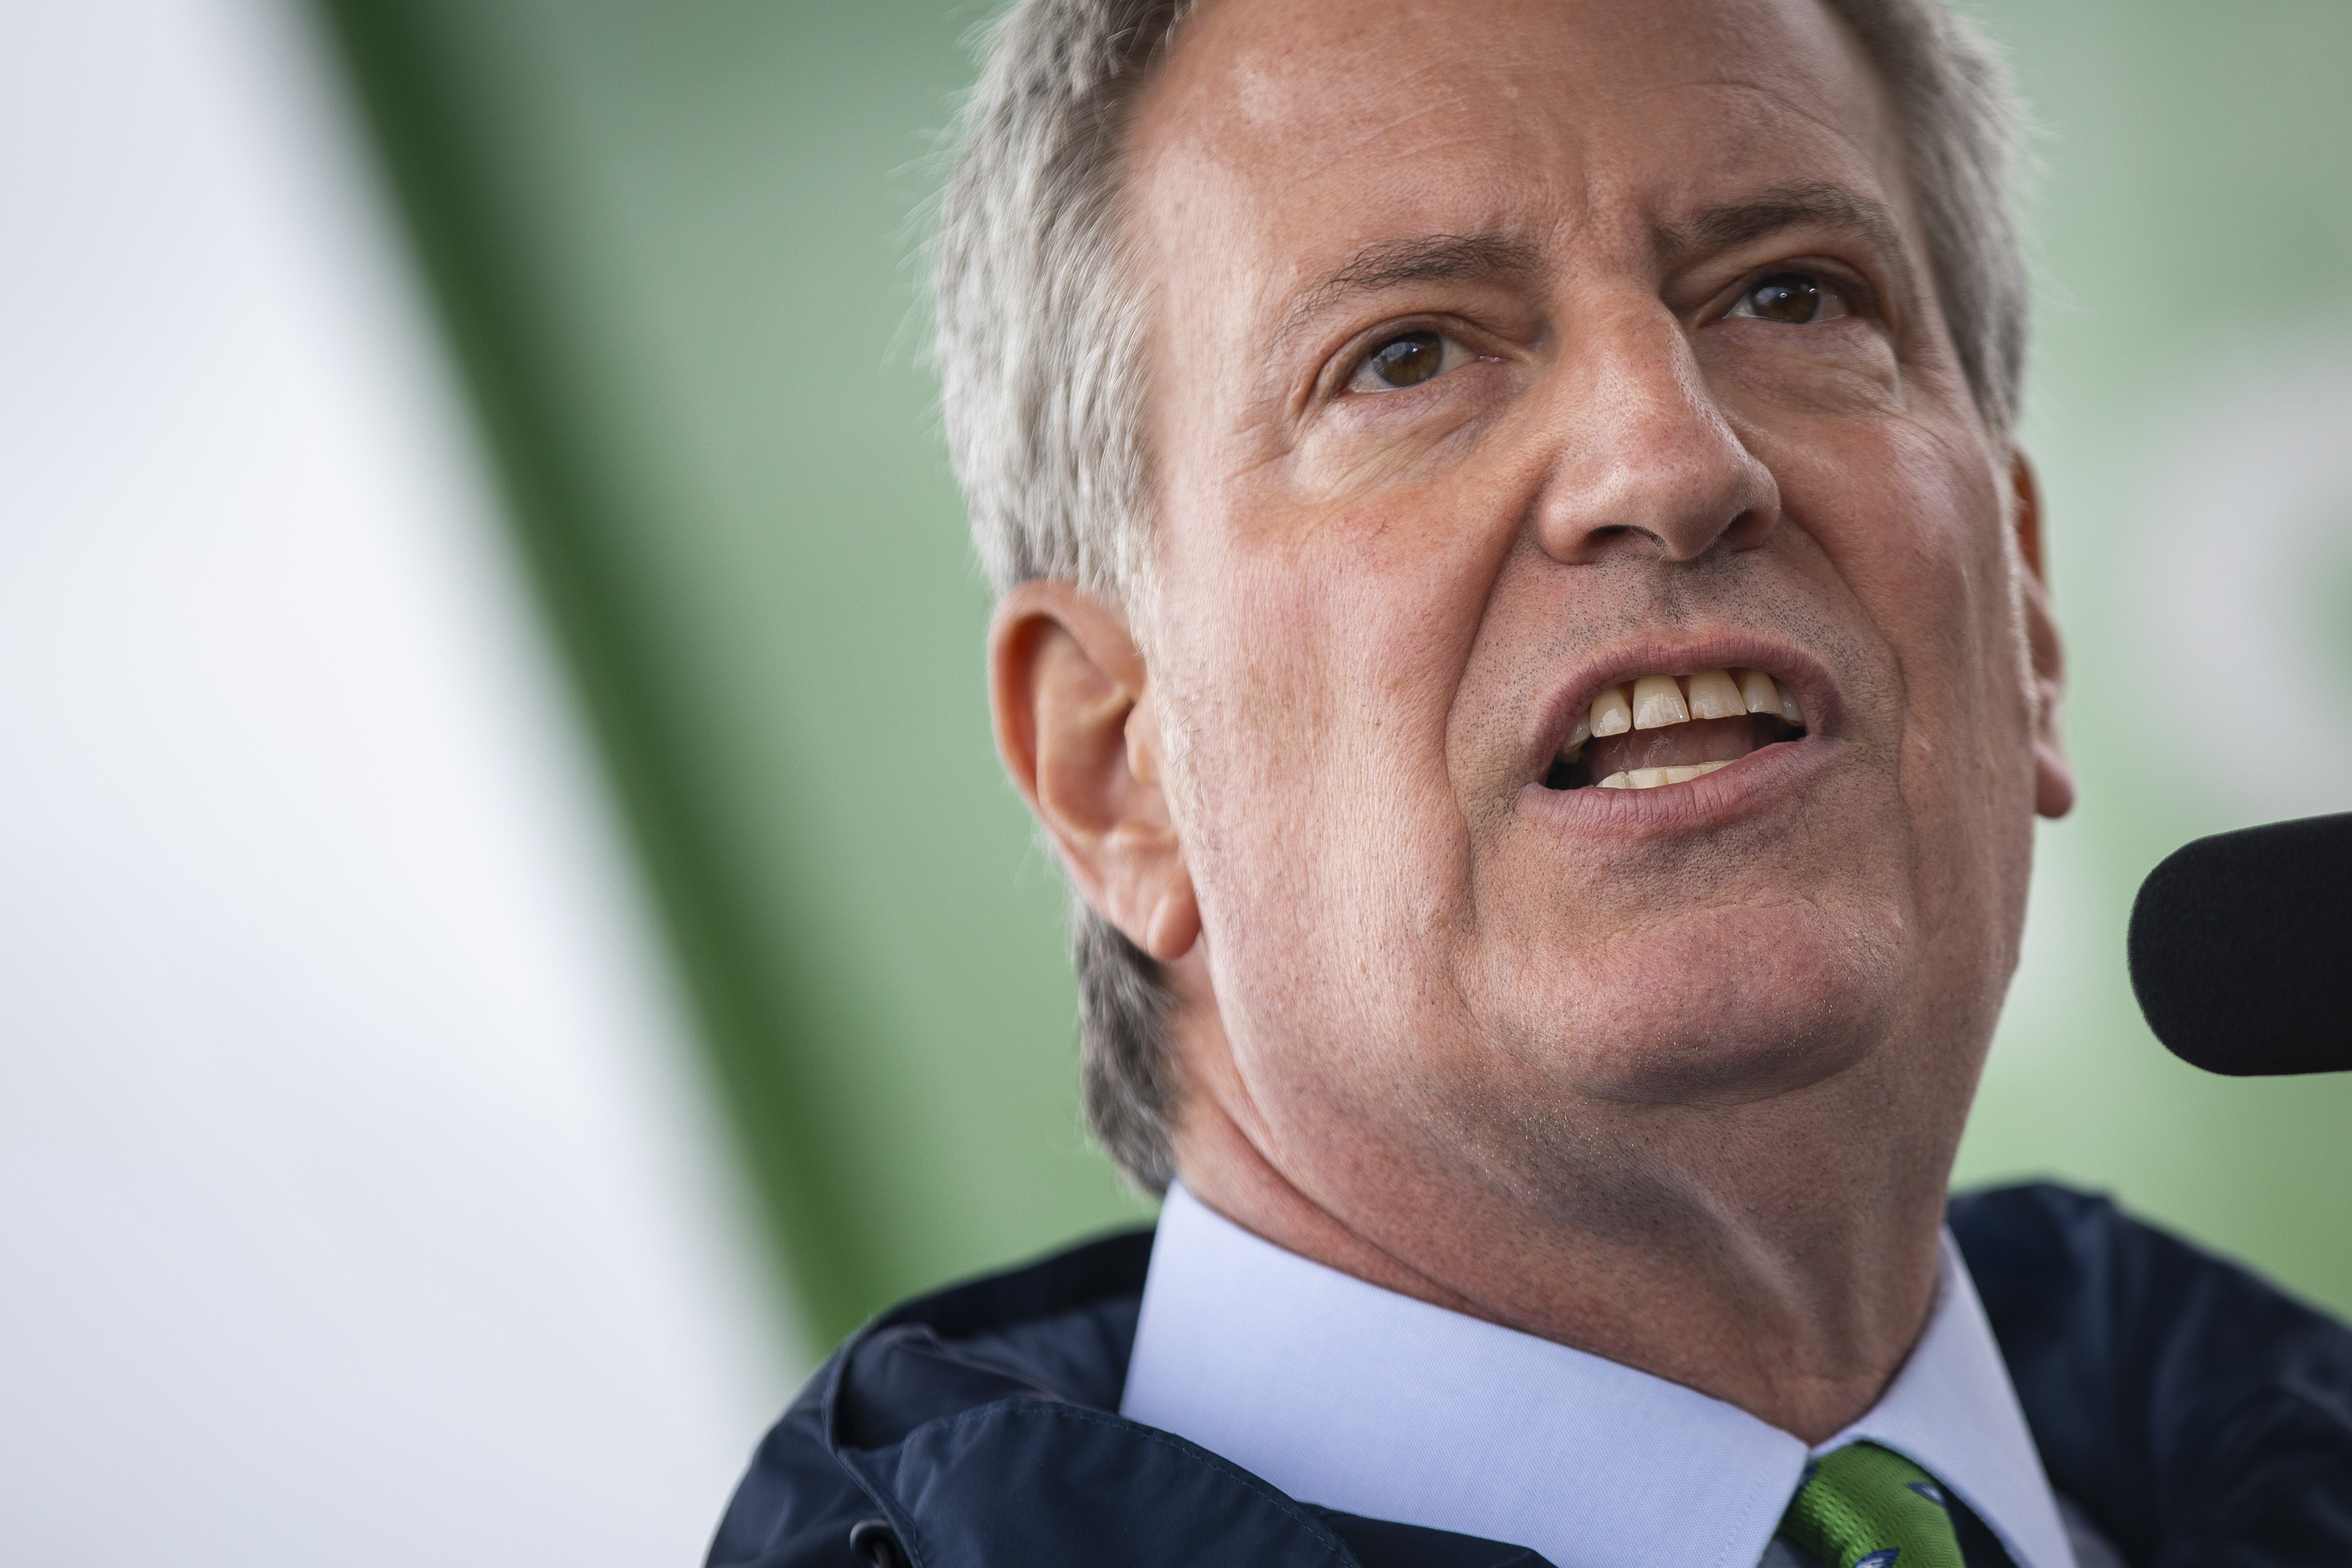 """Mayor Bill De Blasio Discusses NYC's """"Green New Deal"""" On Earth Day"""